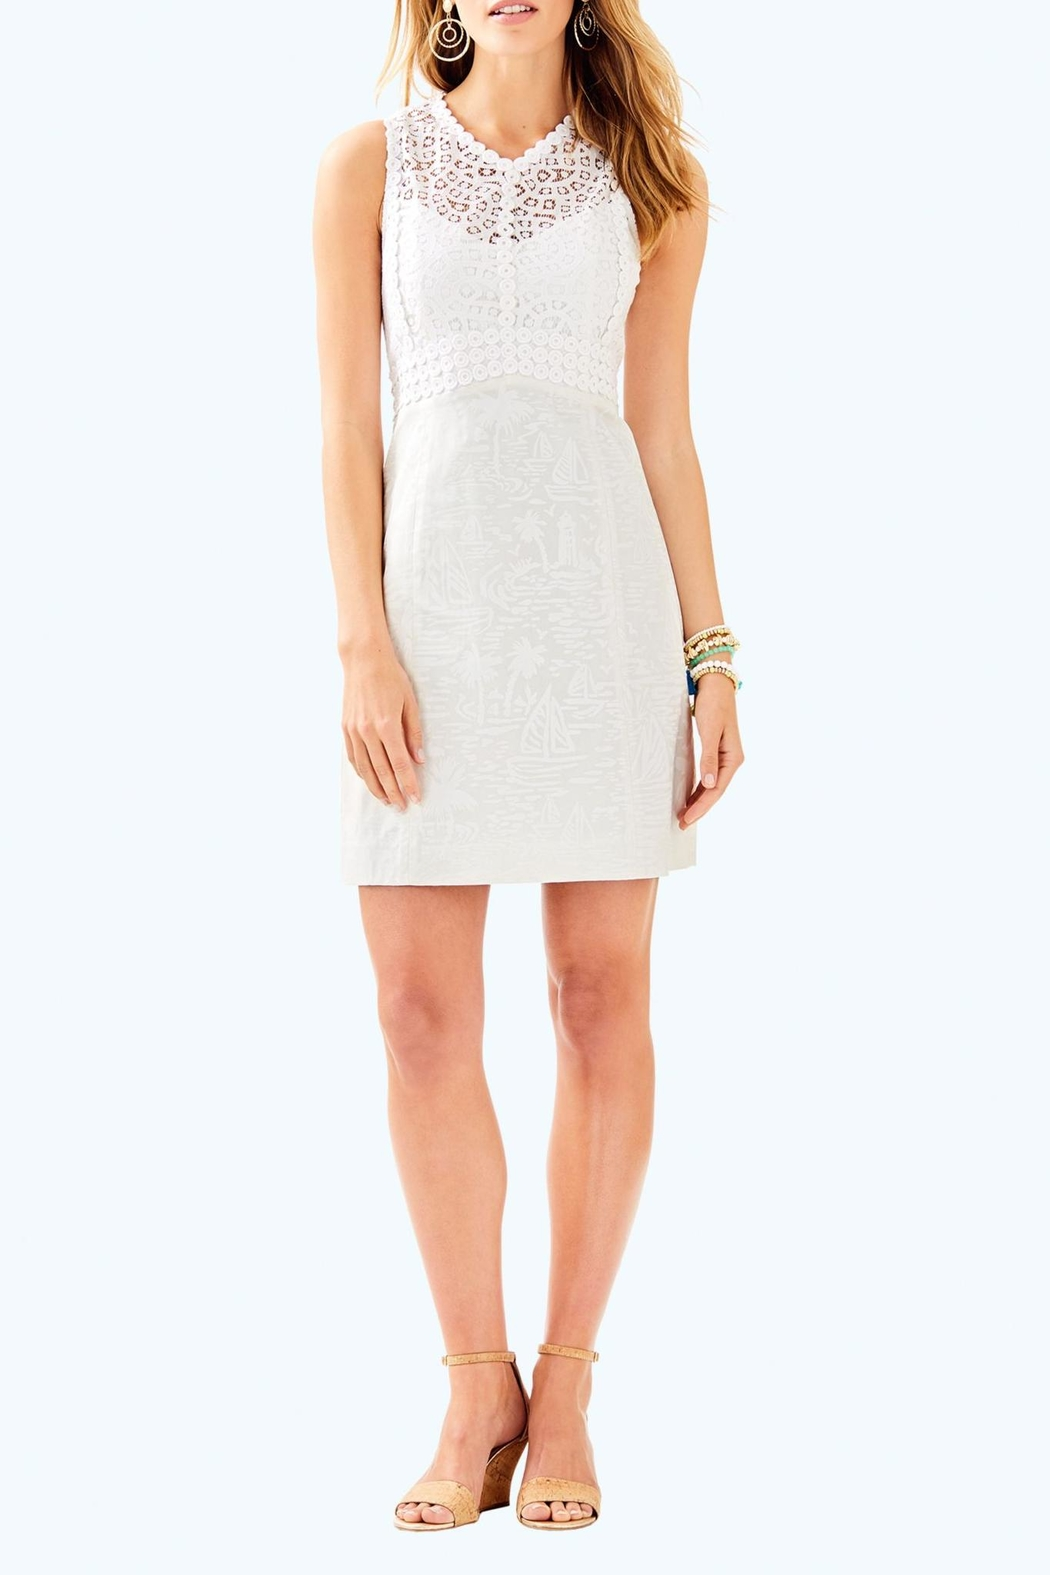 Lilly Pulitzer Leigh Stretch-Shift Dress - Back Cropped Image